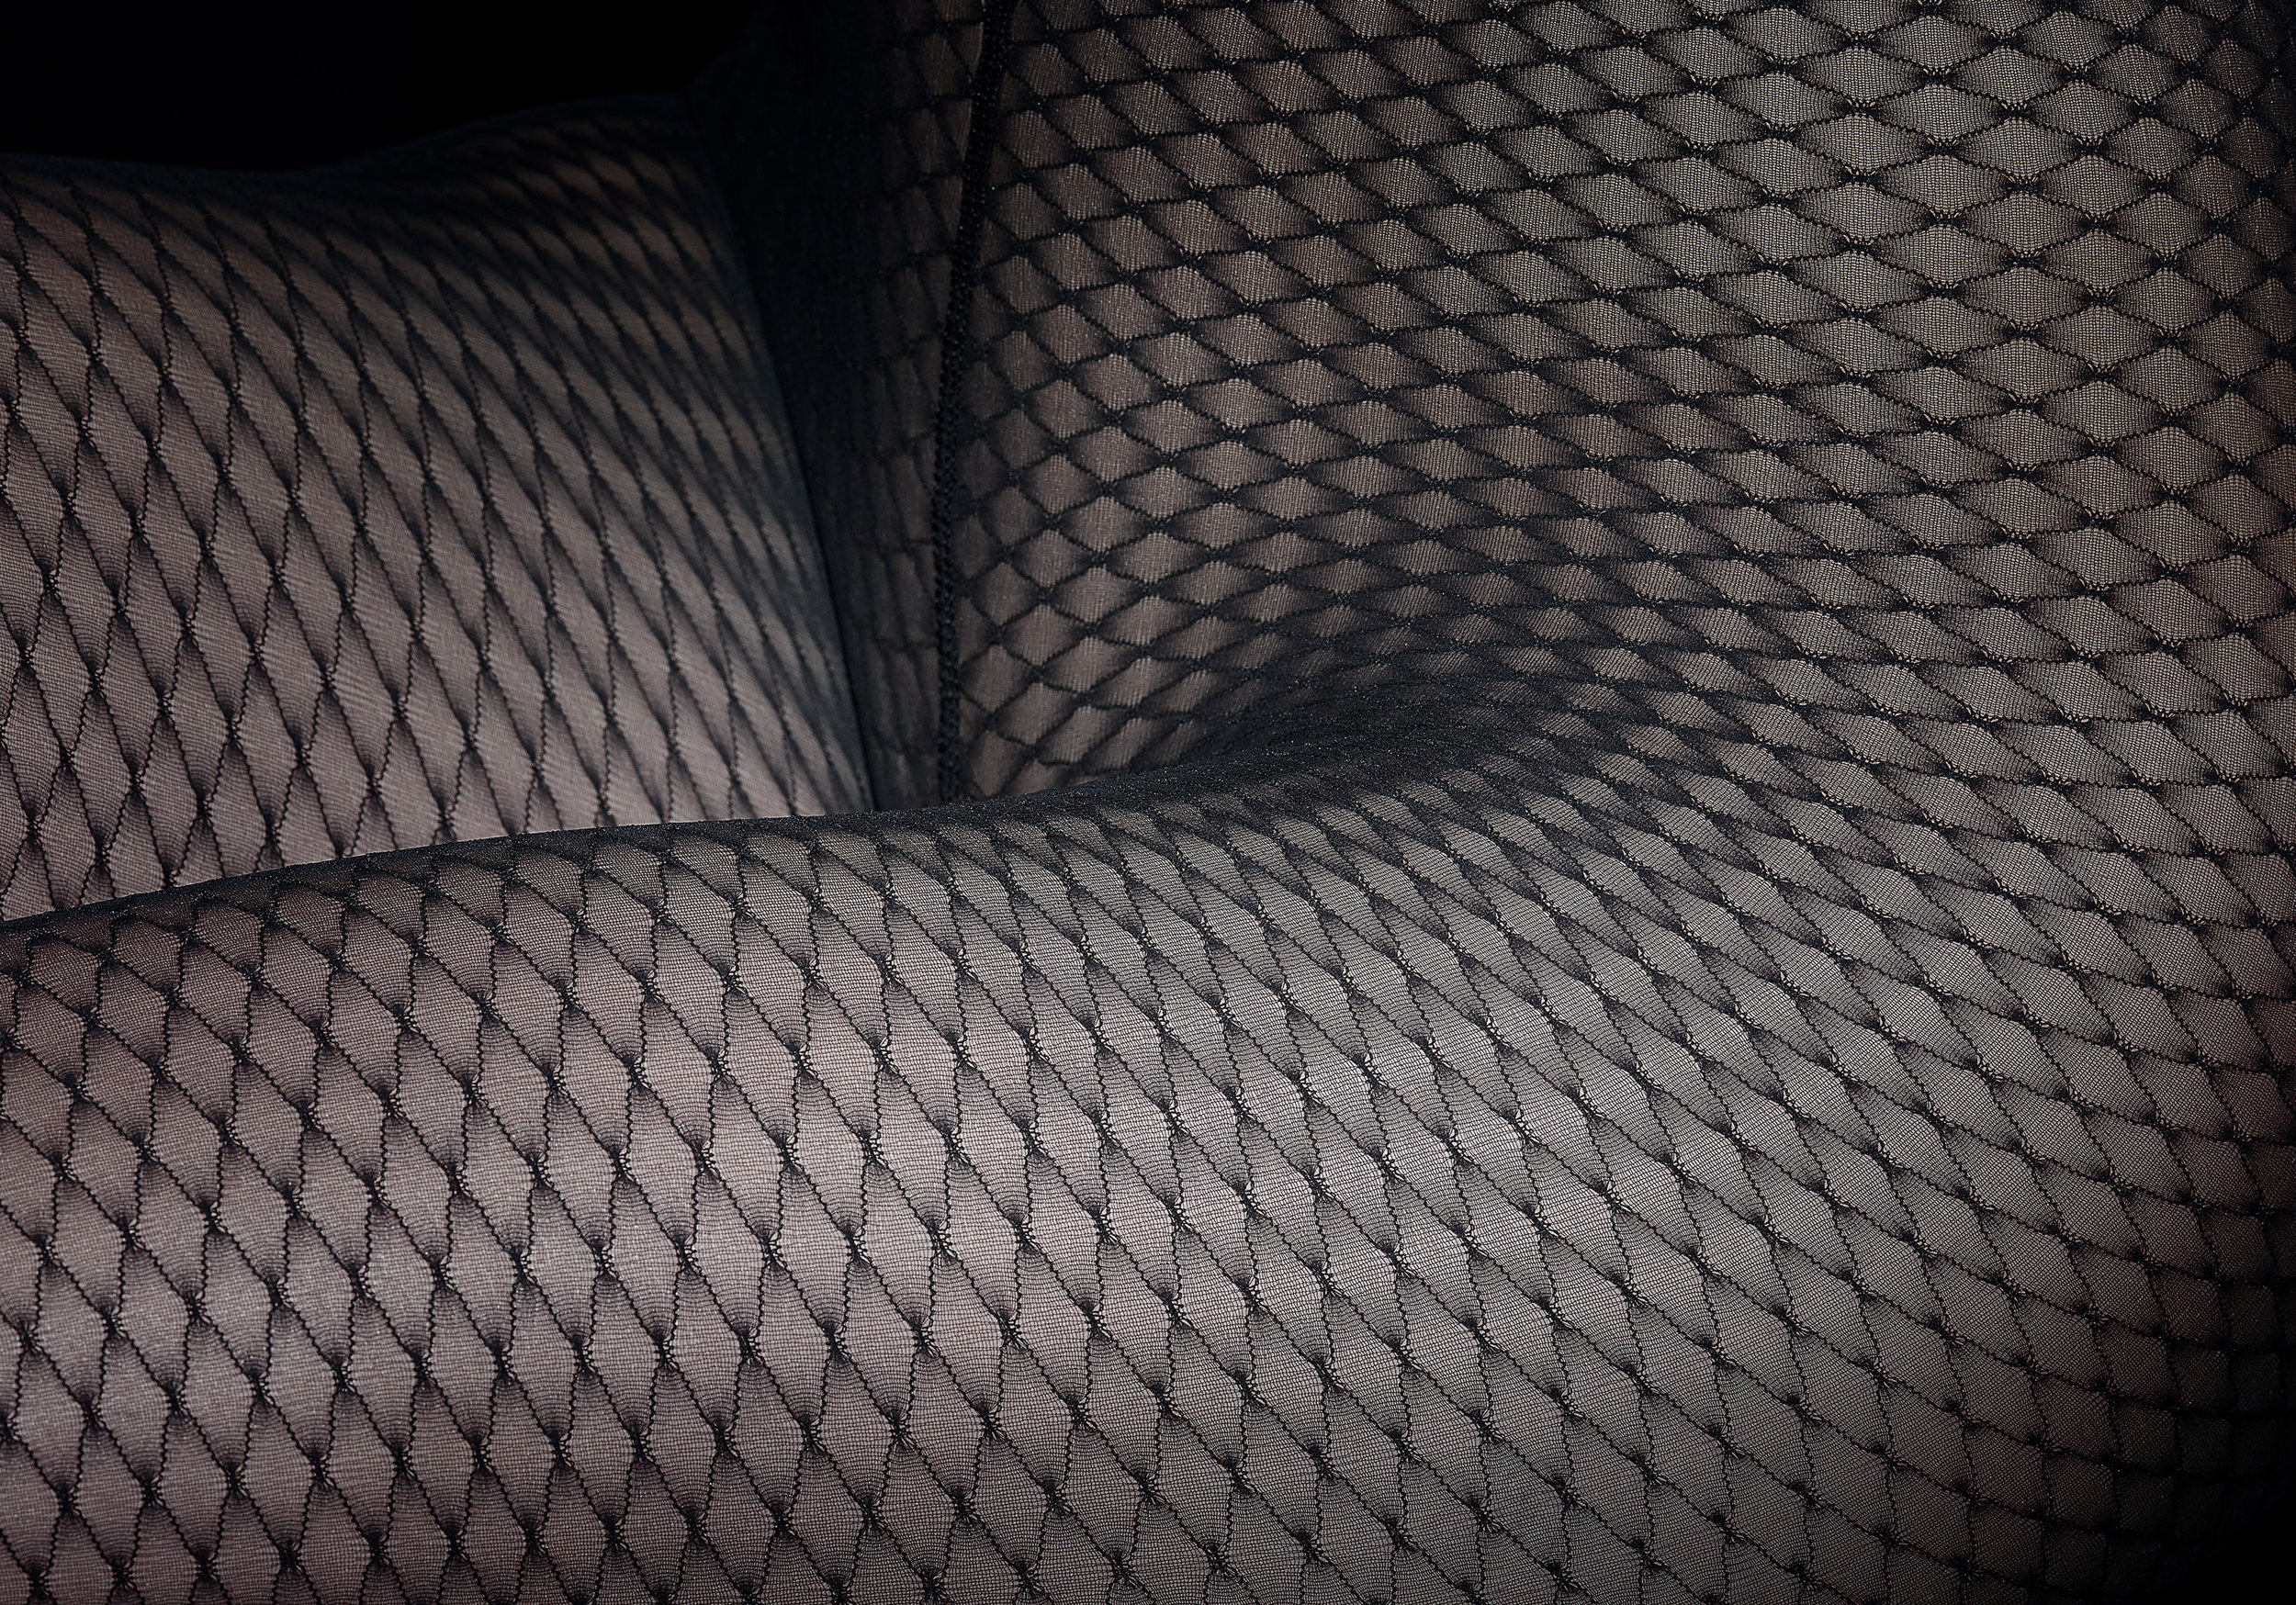 wolford-pantyhose-close-up-abstract-fashion-photographer-advertising-photography-stan-musilek